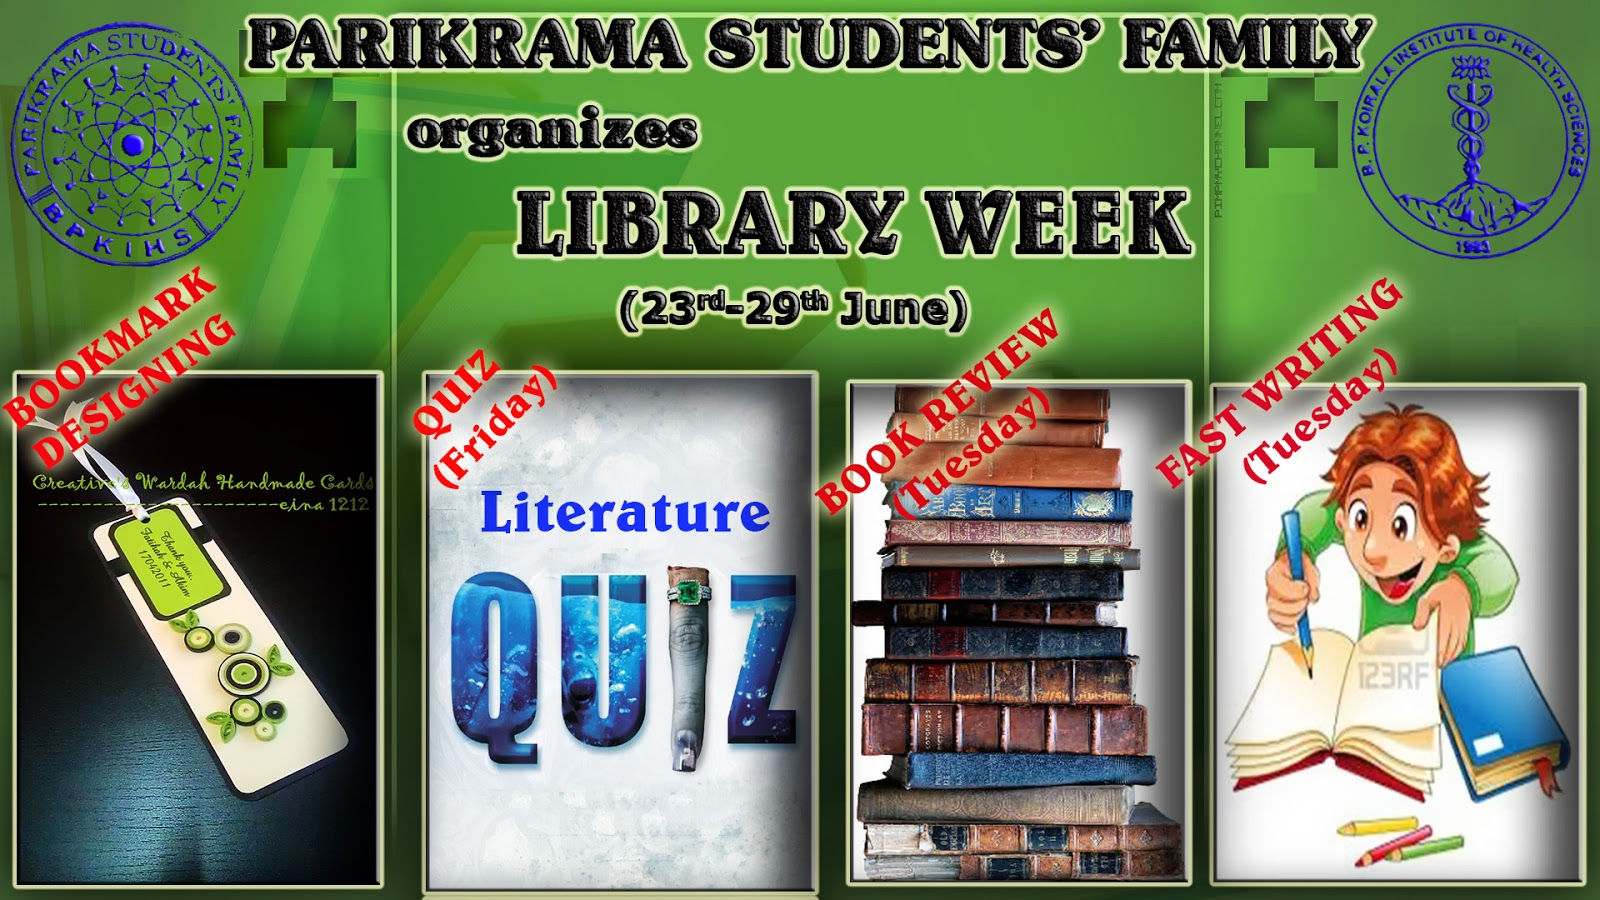 LIBRARY WEEK at Parikrama